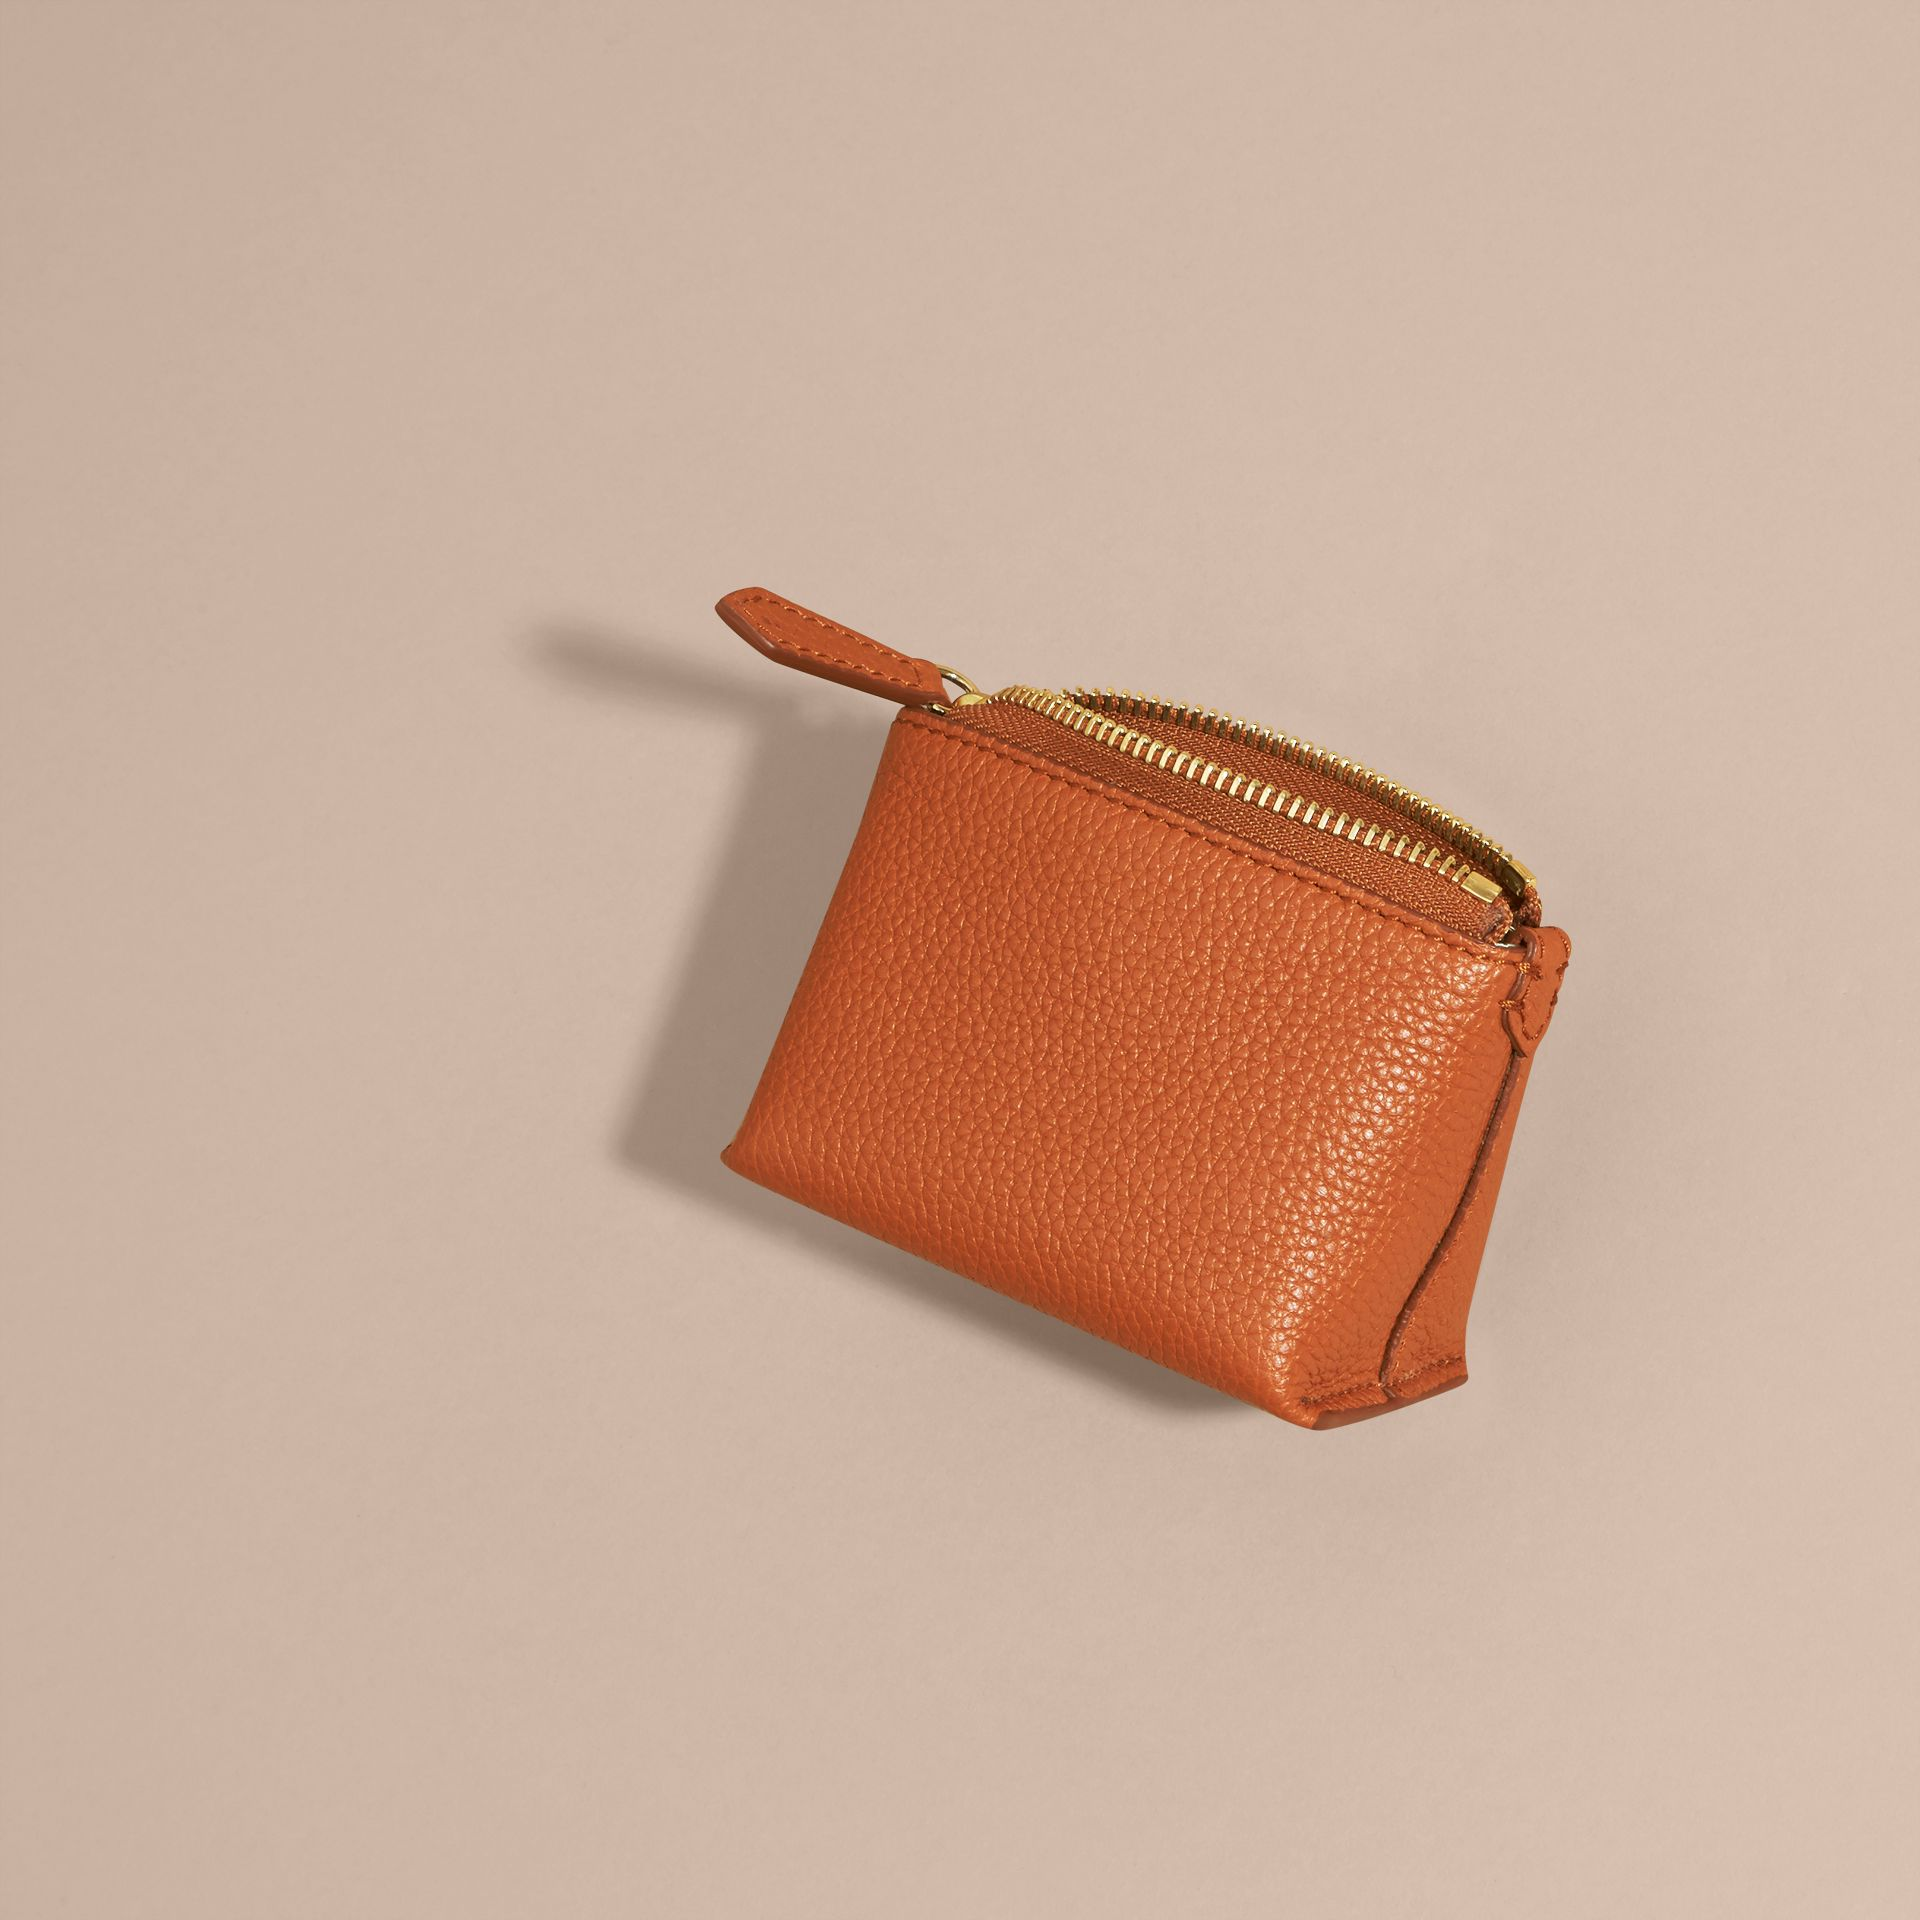 Grainy Leather Lipstick Case in Orange Umber - Women | Burberry - gallery image 4